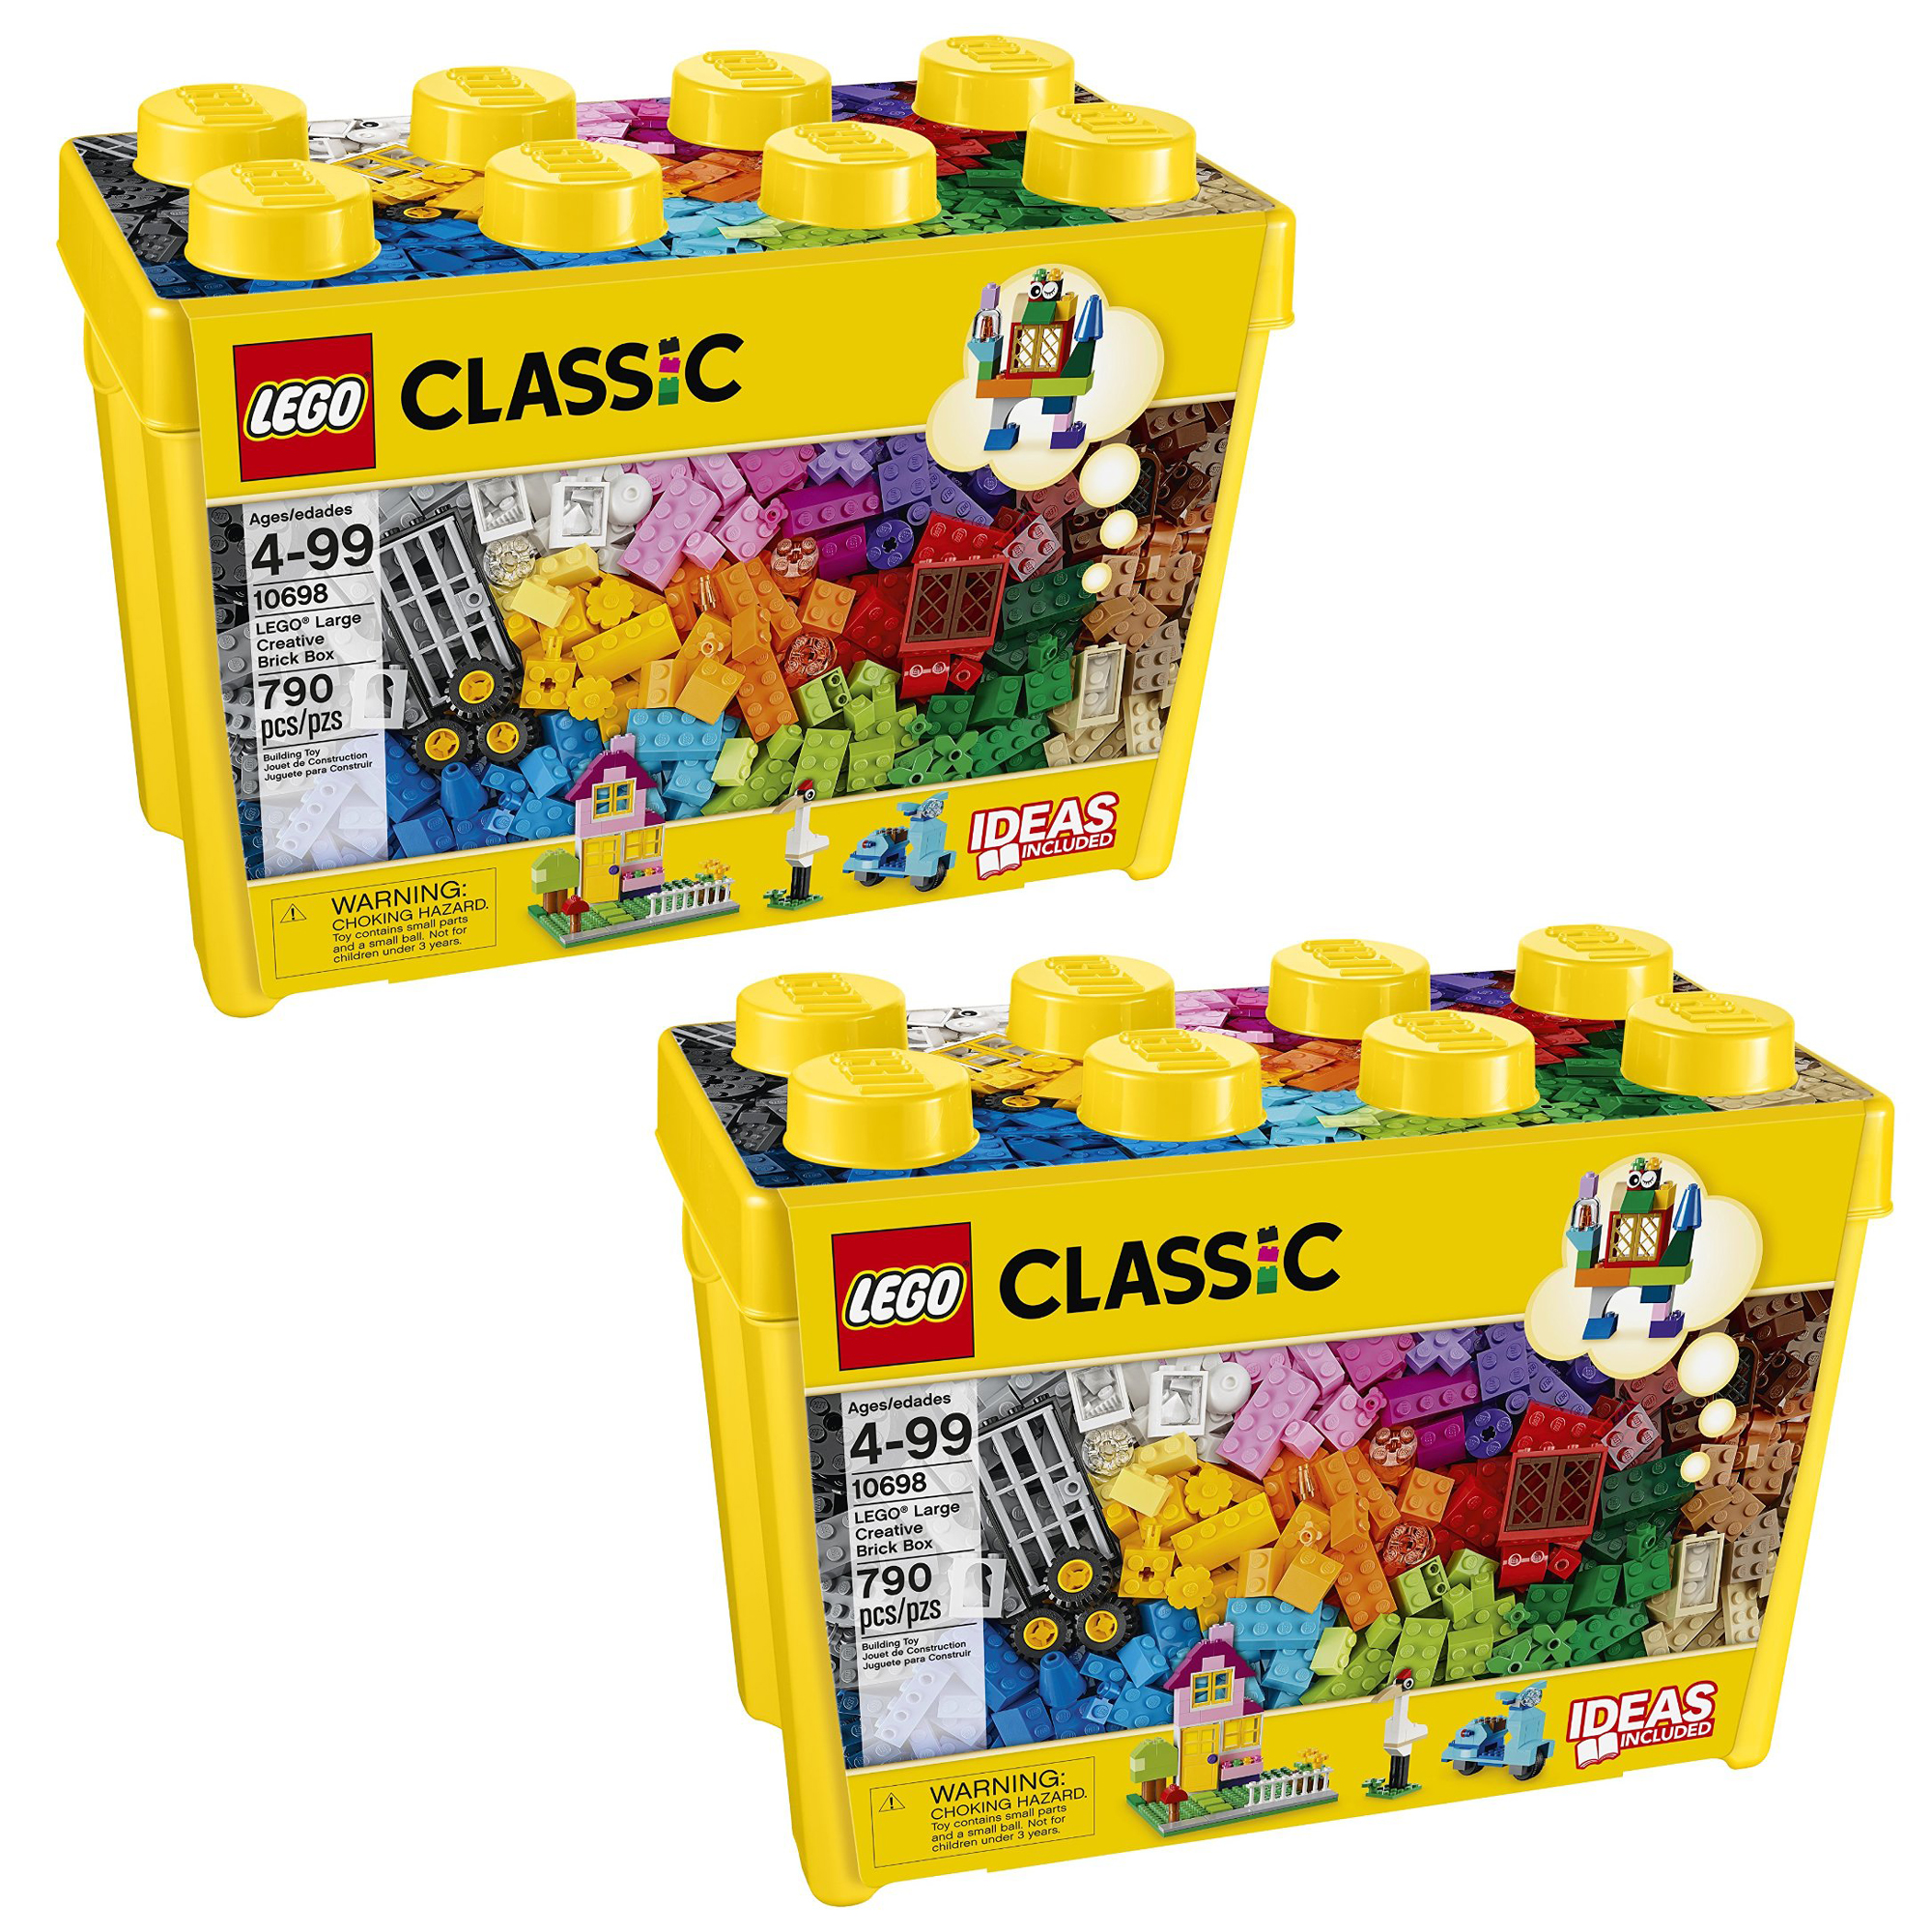 207759a21d7d Details about LEGO 10698 Classic Creative Bricks Kids 790 Piece Building Box  Sets (2 Pack)